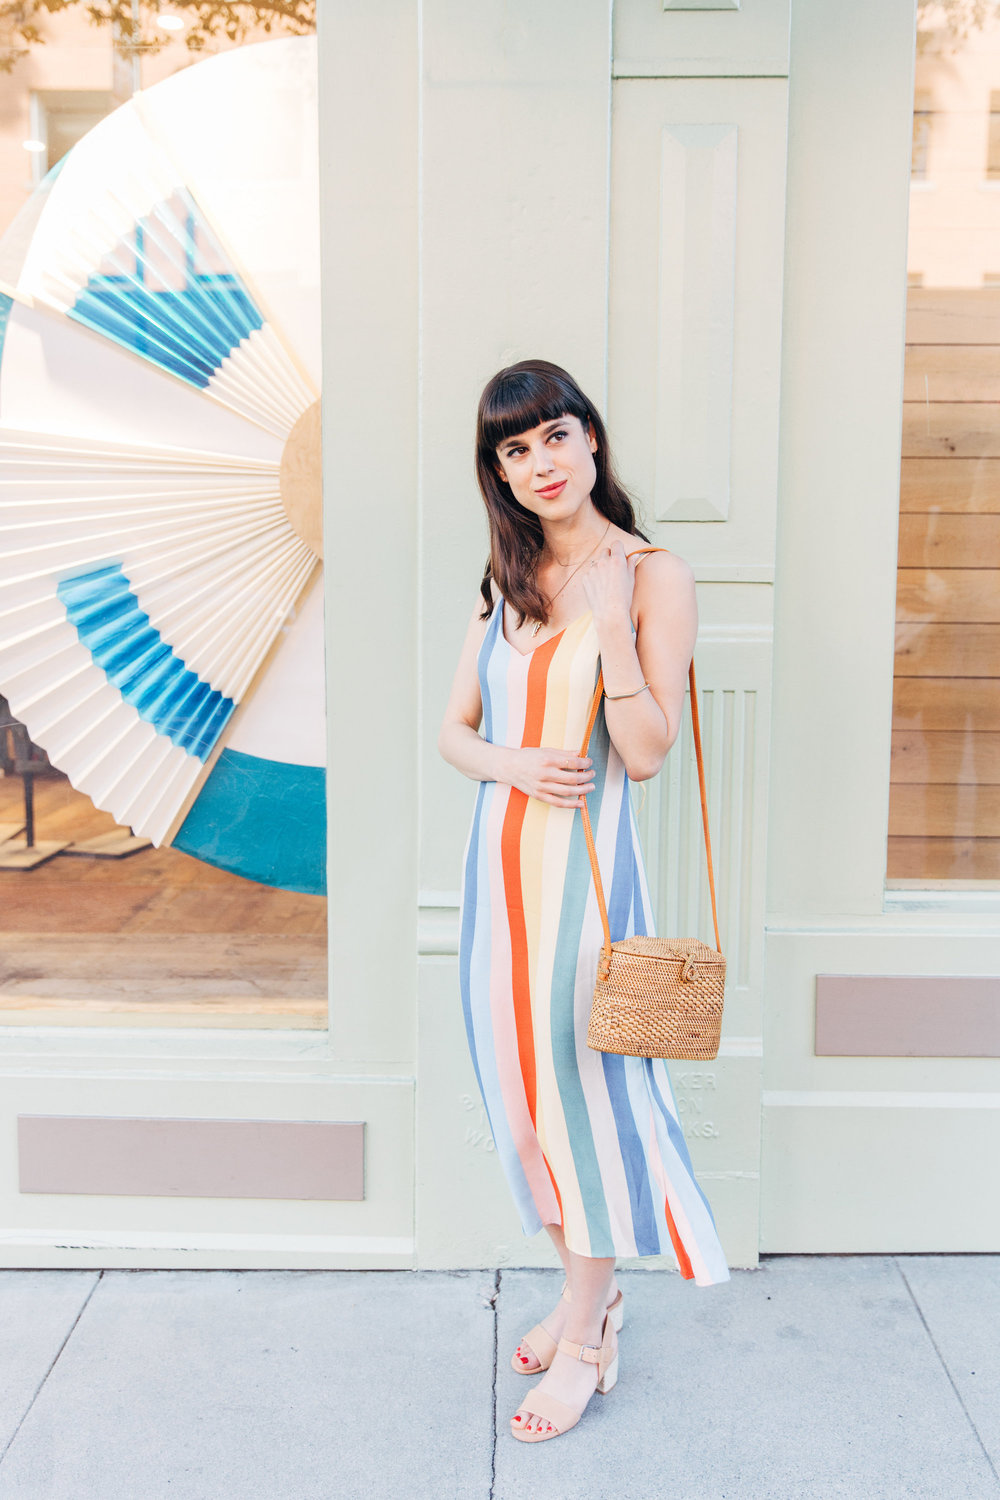 Reformation rainbow sustainable dress // A Week Of Bright & Bold Ethical Outfits With Michelle Chavez From Michelle For Good on The Good Trade